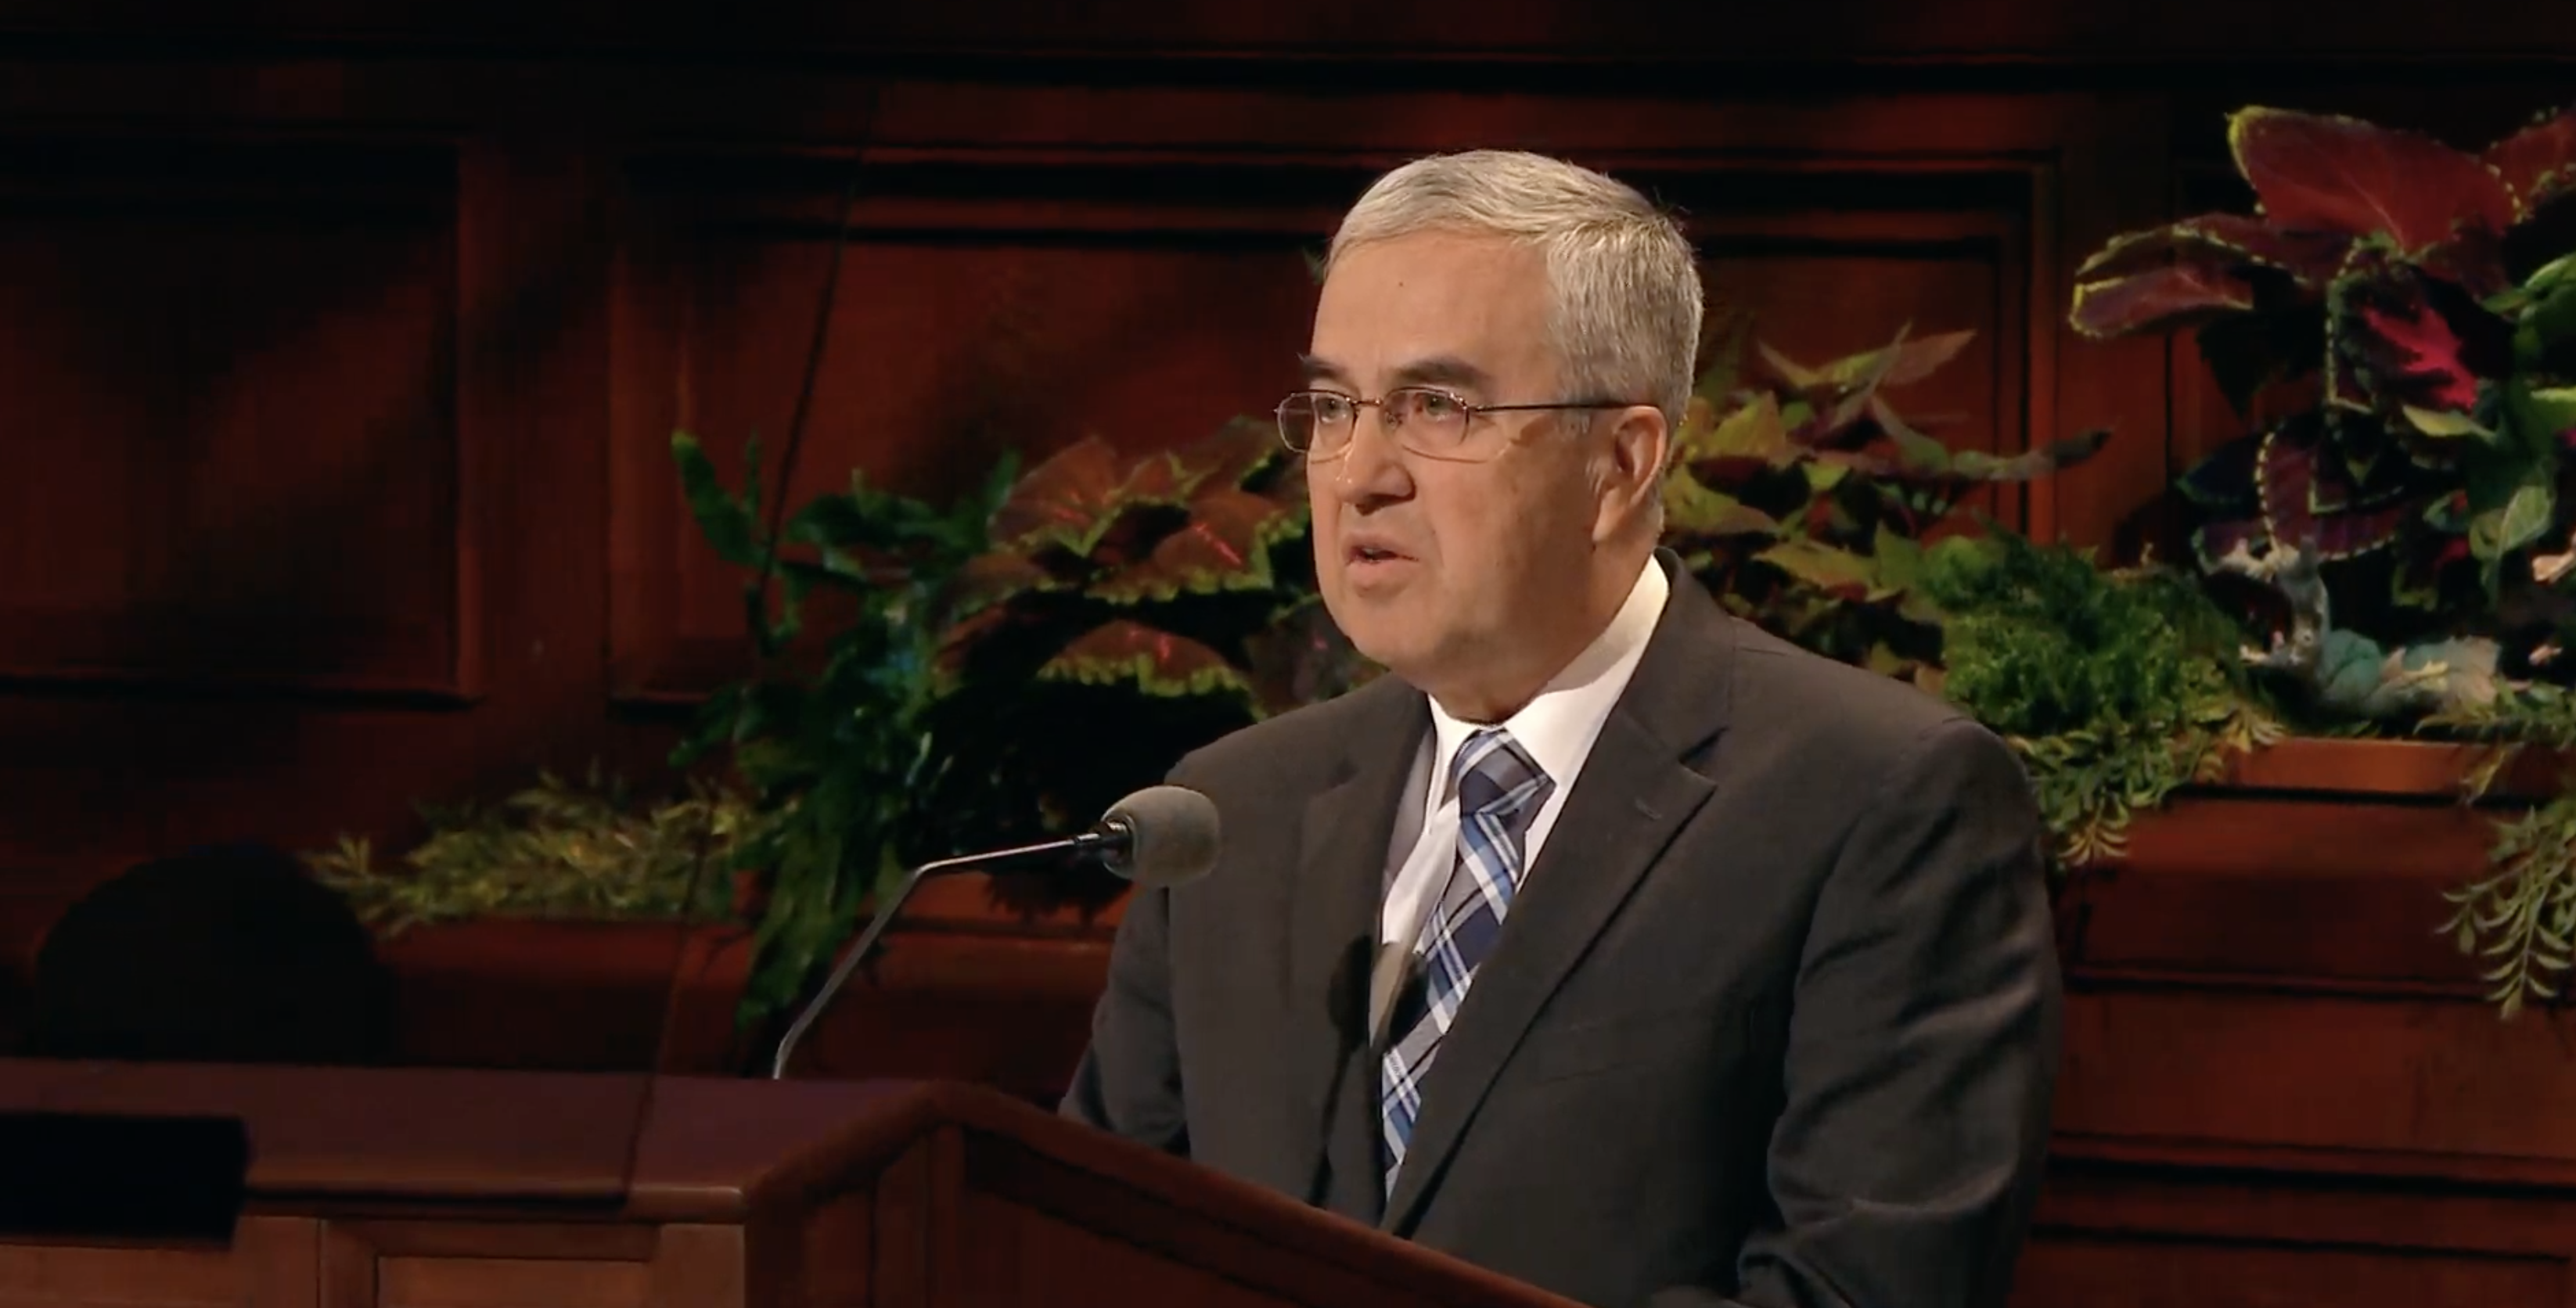 Elder Walter F. Gonzalez, a General Authority Seventy, speaks during the Sunday morning session in the 189th Semiannual General Conference of the Church on Oct. 6, 2019.